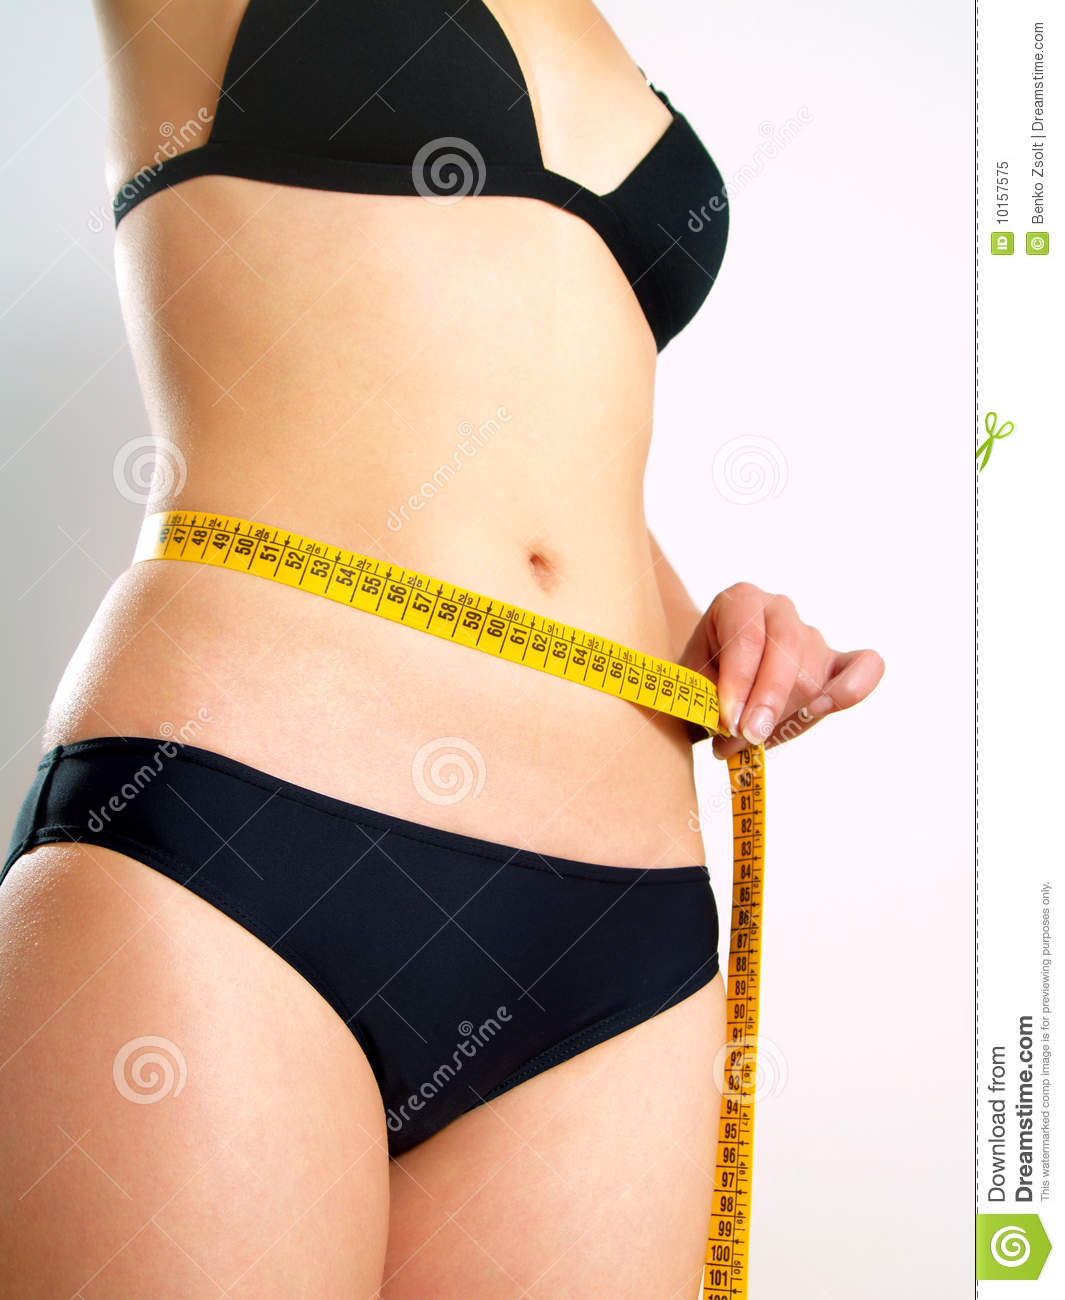 female body with tape measure stock image image 10157575. Black Bedroom Furniture Sets. Home Design Ideas